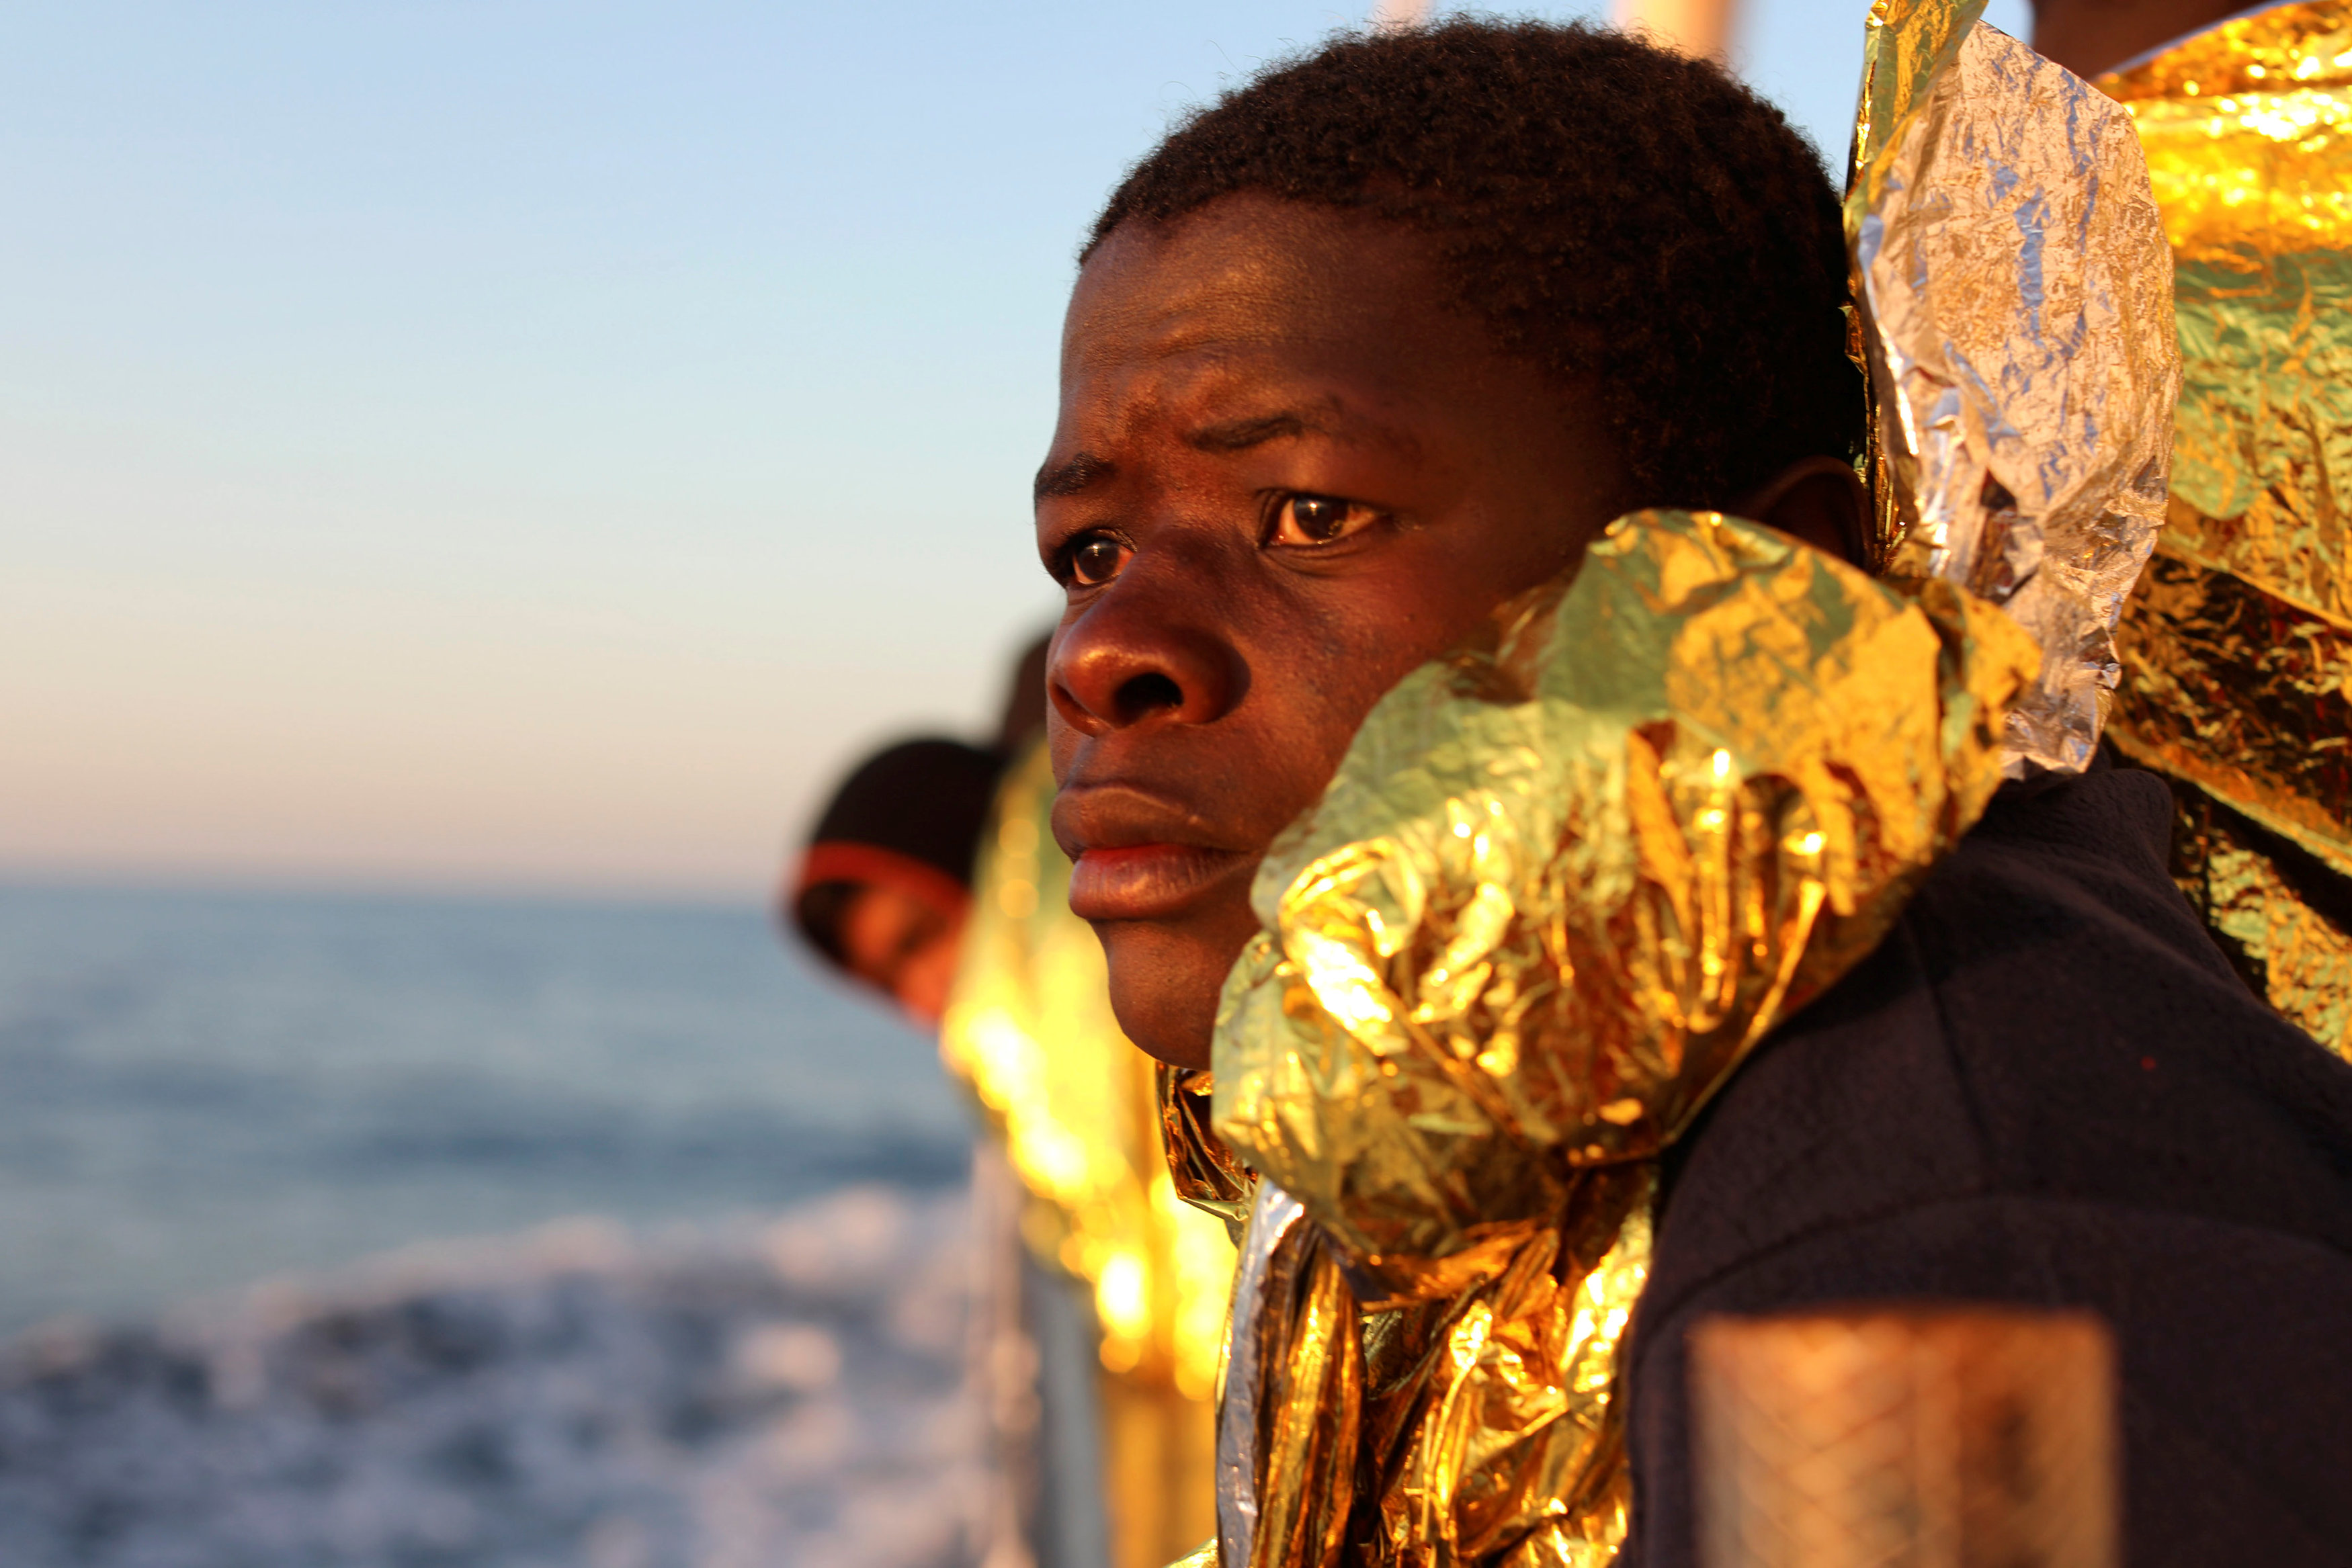 A migrant, covered with a thermal blanket, gazes at the sea aboard the former fishing trawler Golfo Azzurro of the Spanish NGO Proactiva Open Arms following a rescue operation near the coasts of Libya in the central Mediterranean Sea